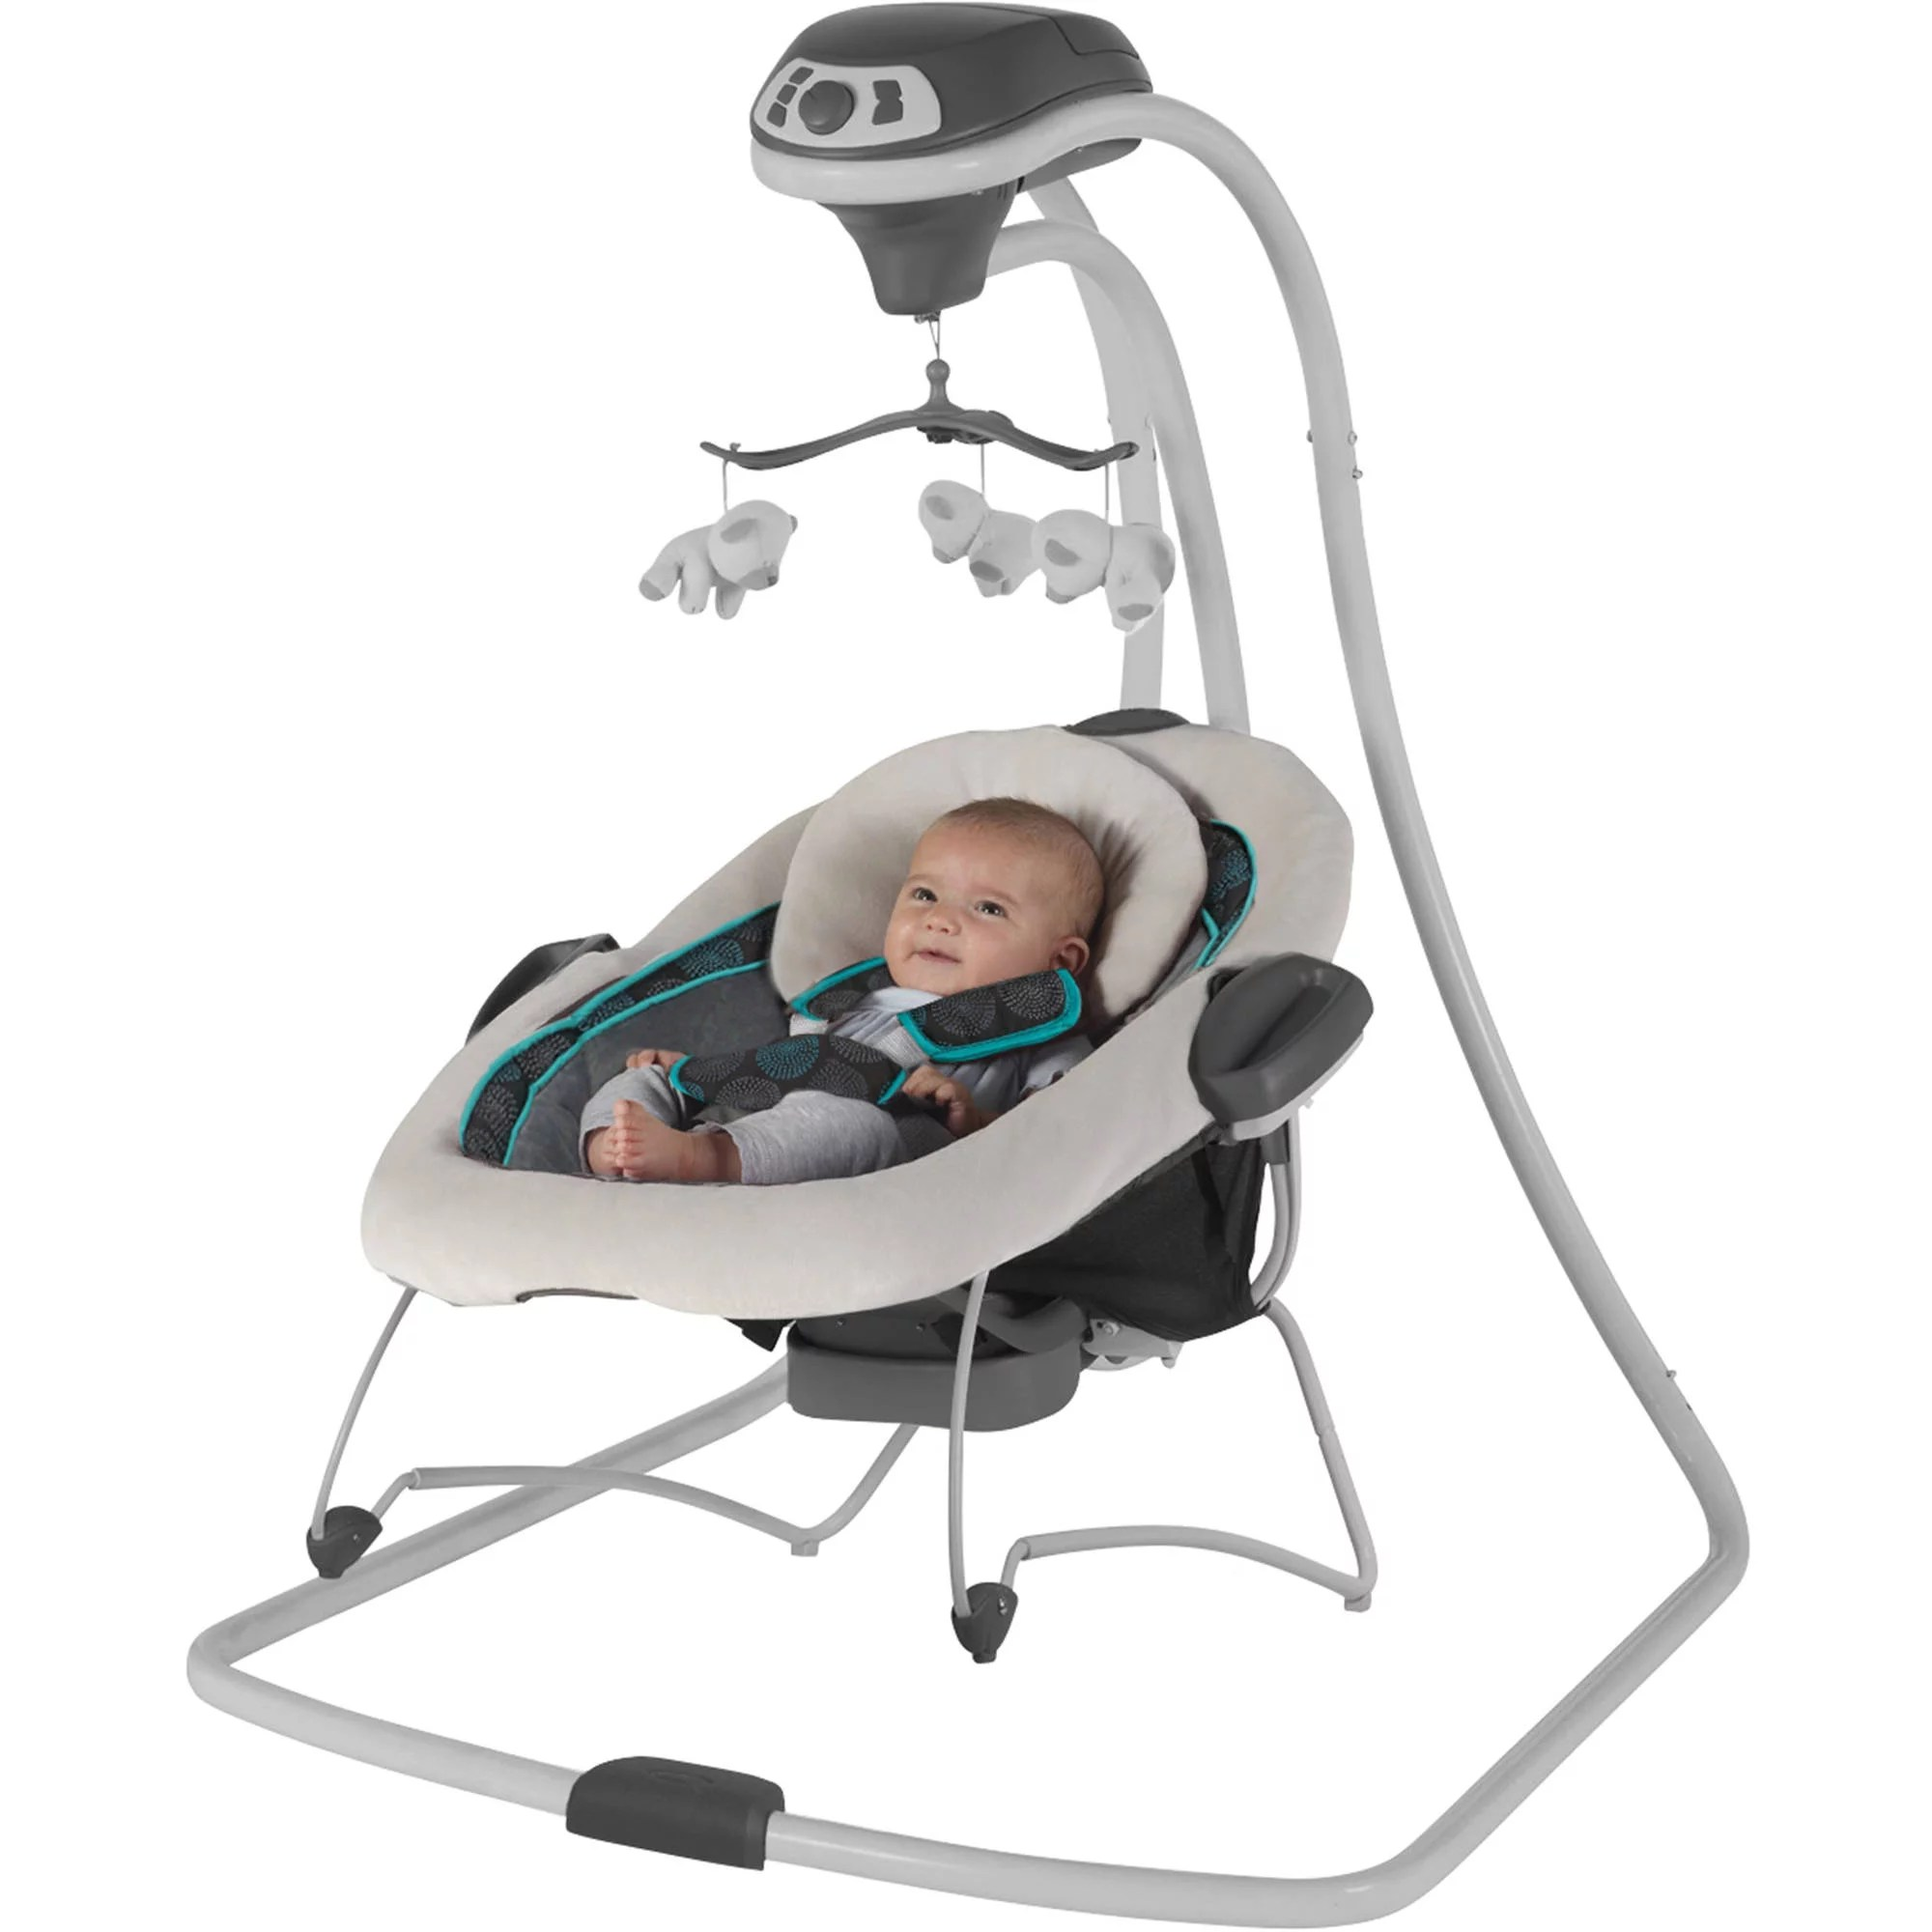 Bouncer Baby Graco Duetconnect Swing Baby Bouncer Bristol Removable